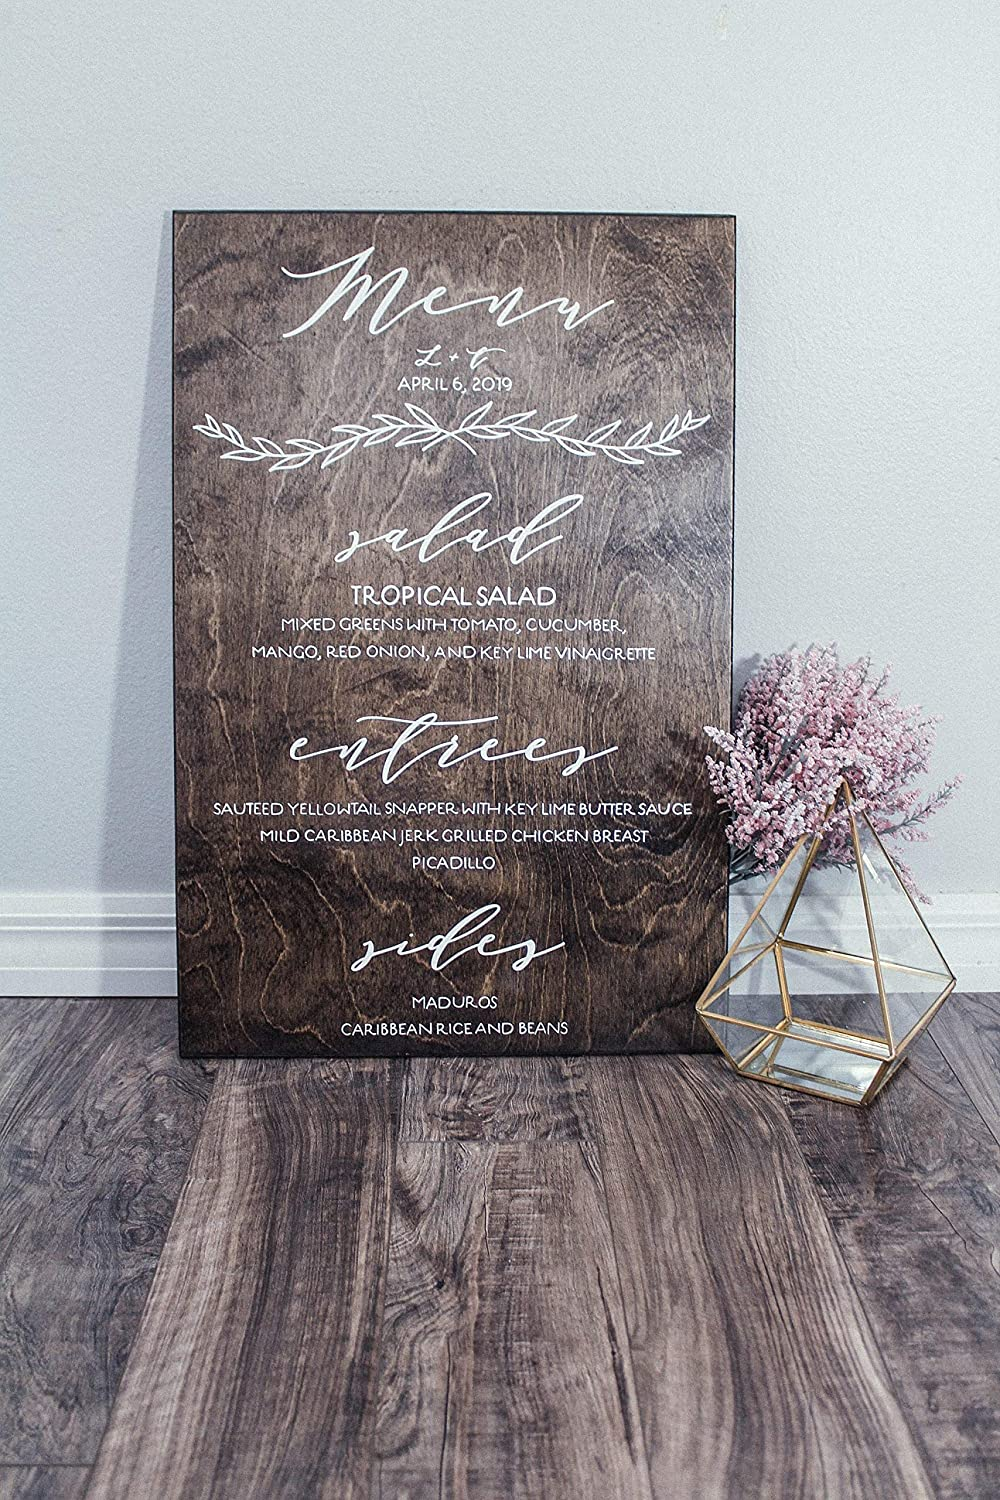 Kiss Cervical Menu Wood Sign Wedding Ranking TOP14 Reception New York Mall Signs for